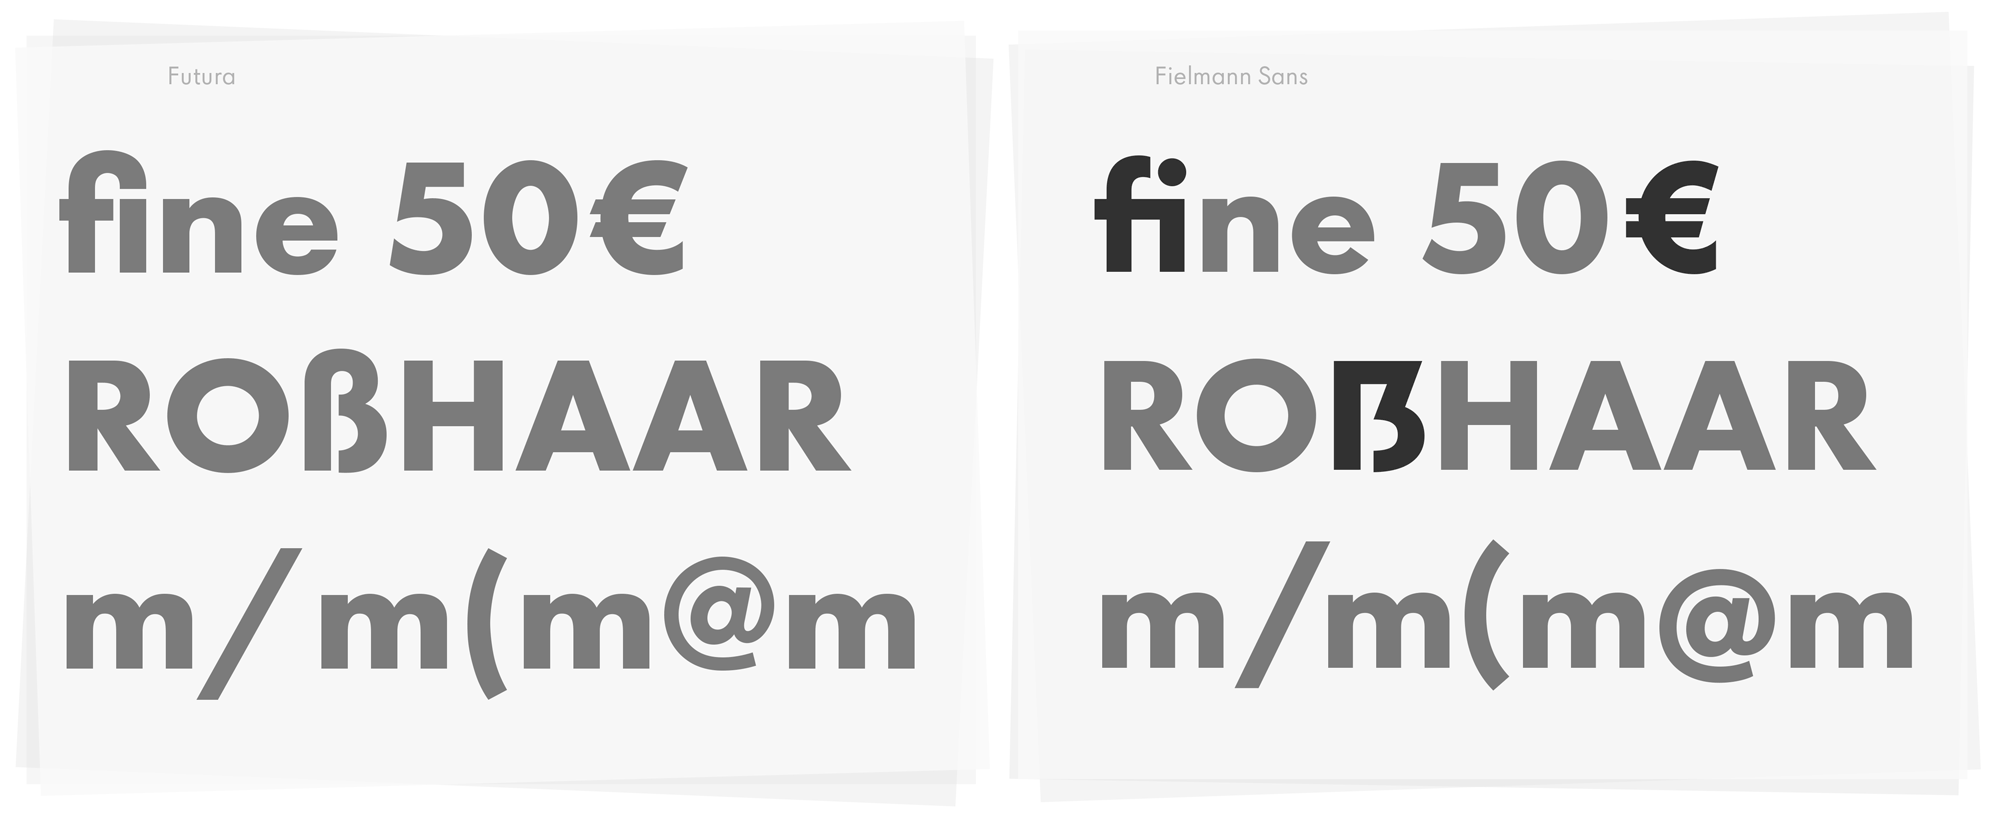 Type Mates Custom Font Fielmann Futura 06 Design Update